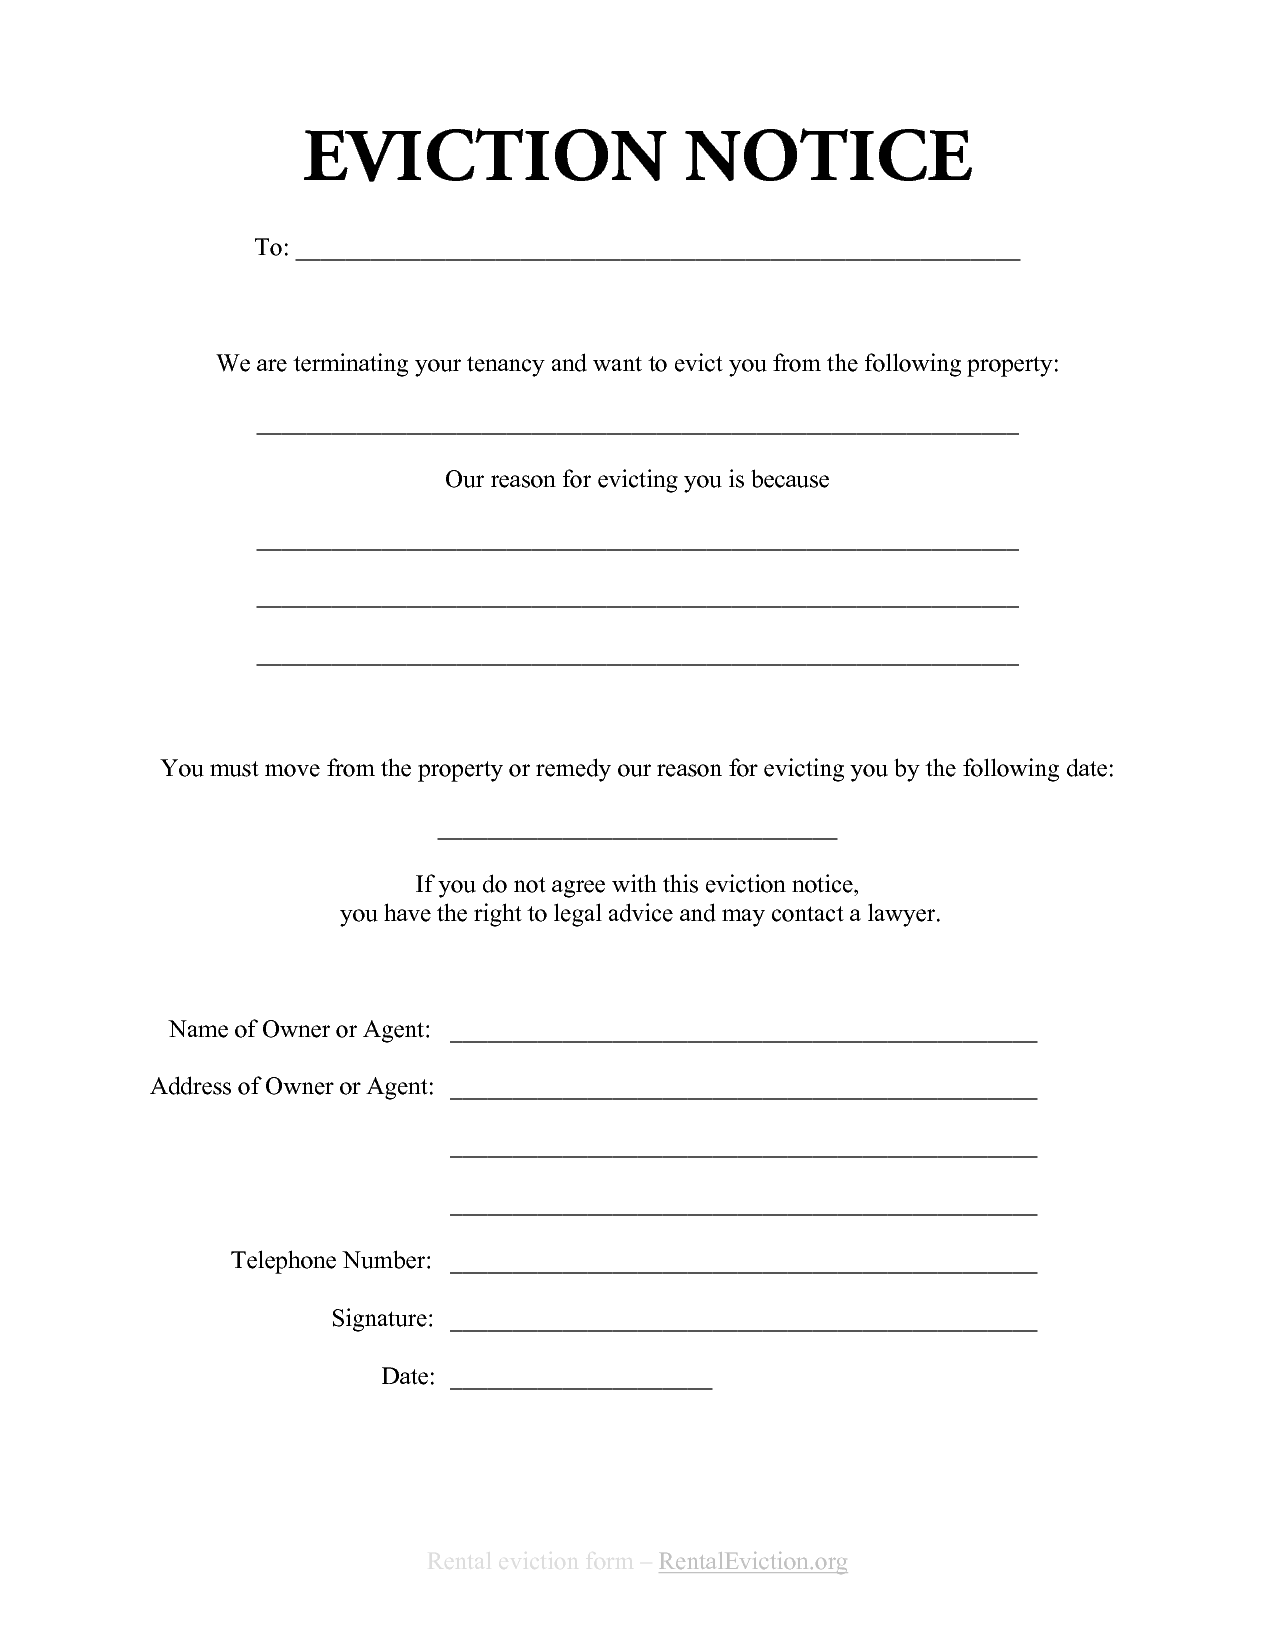 Free Print Out Eviction Notices  Free Rental Eviction Notice  G